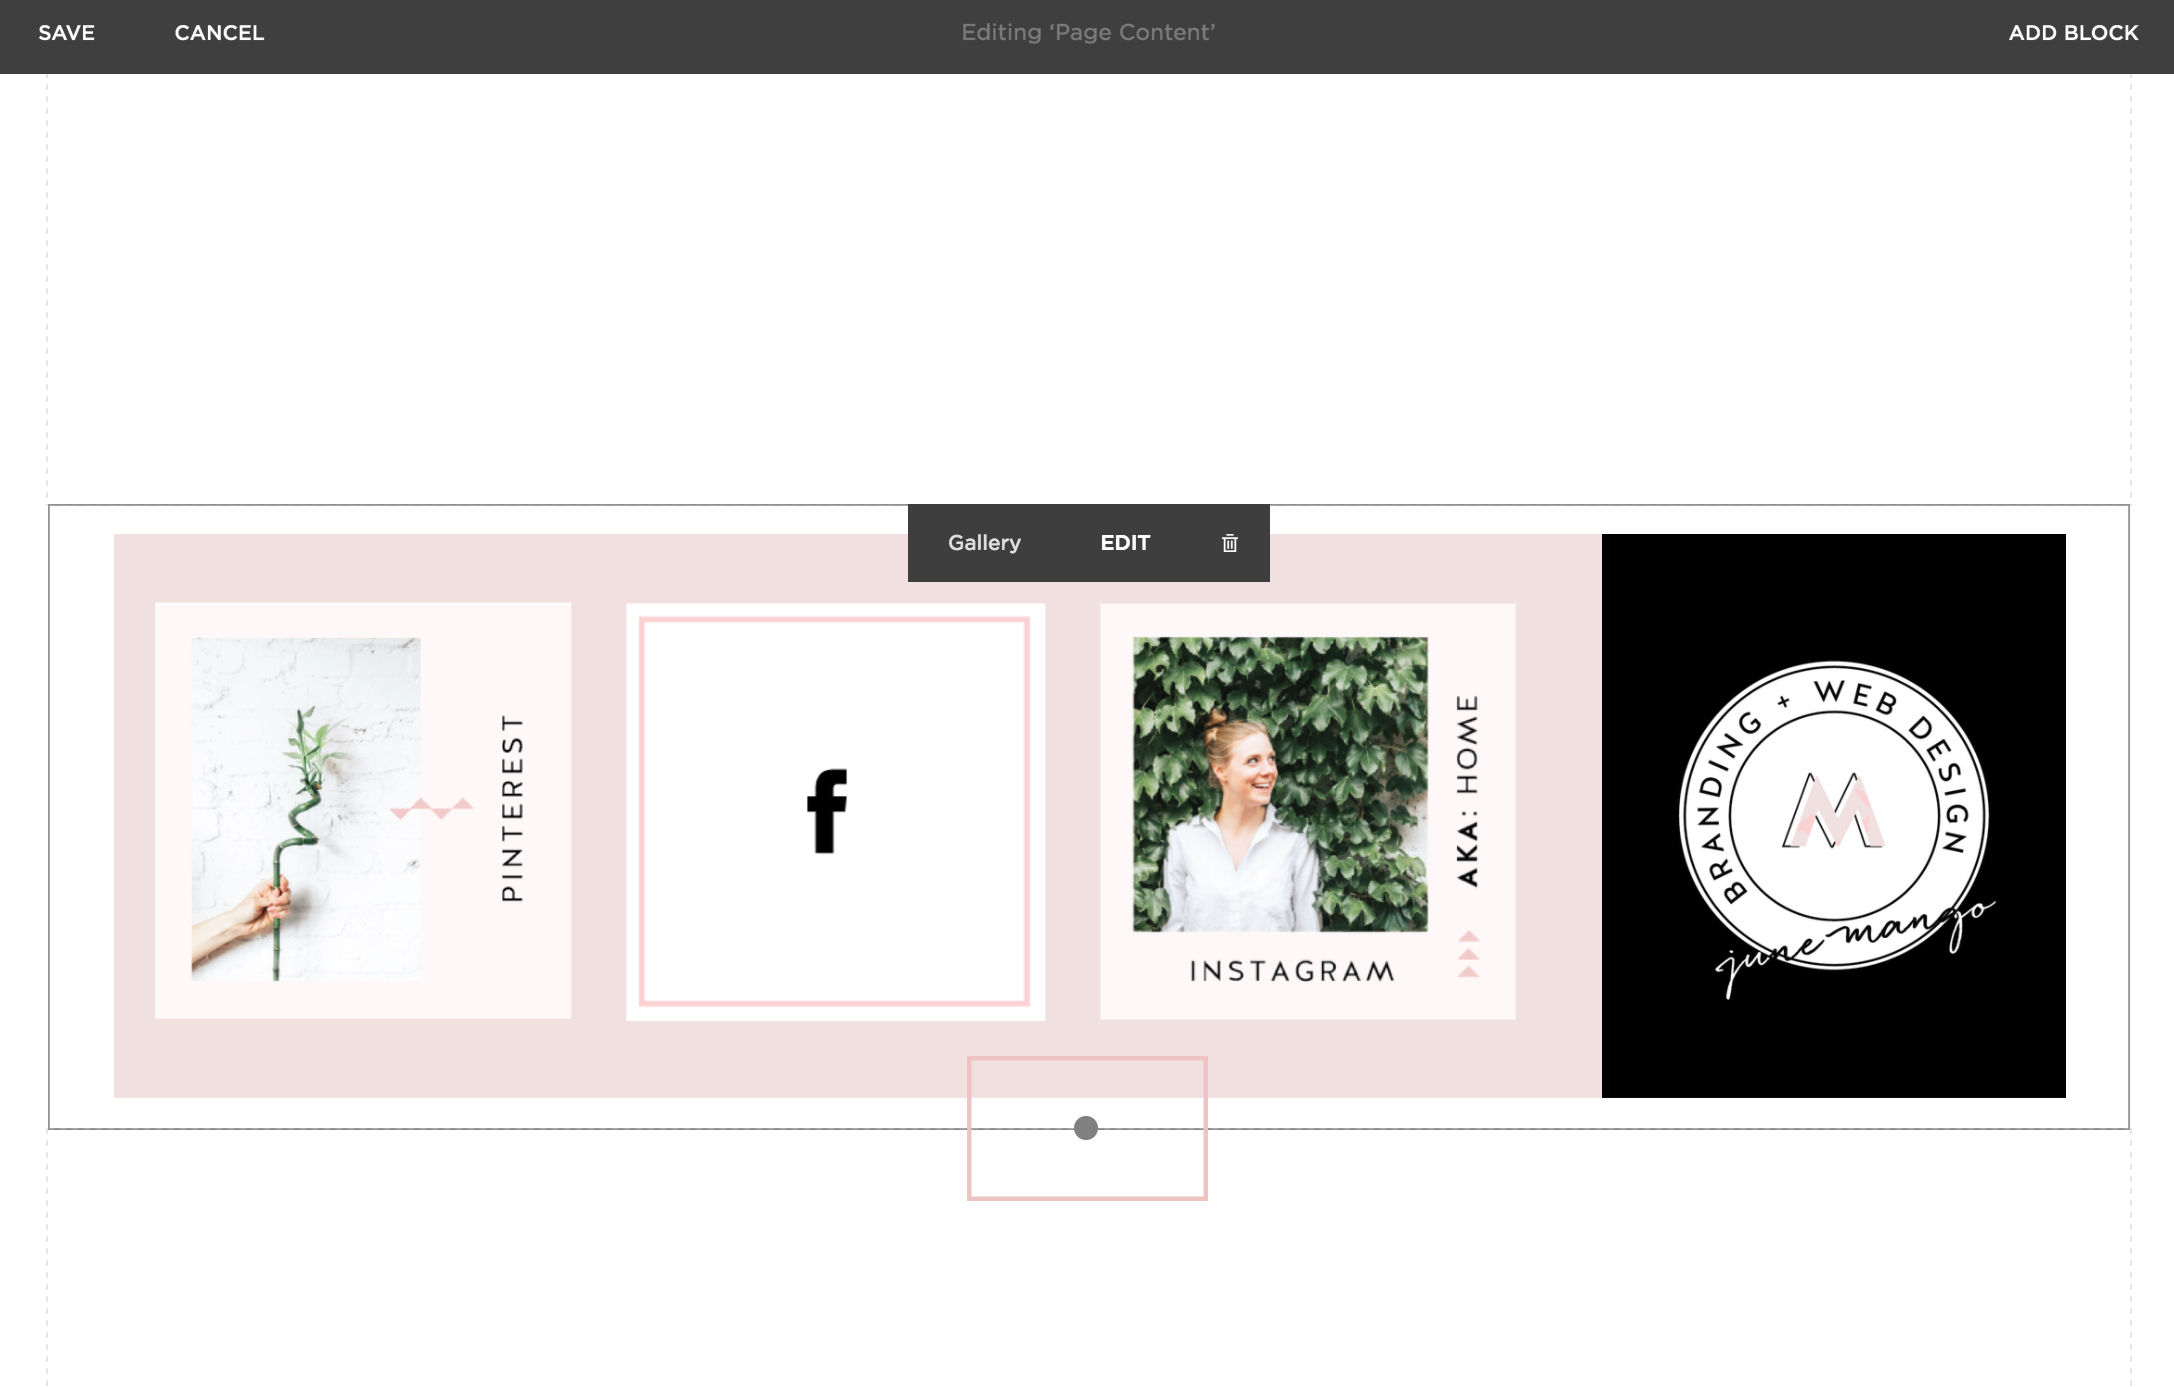 HOW-TO-CREATE-MULTIPLE-LINKS-ON-A-SINGLE-IMAGE-WITH-SQUARESPACE-fix.jpg